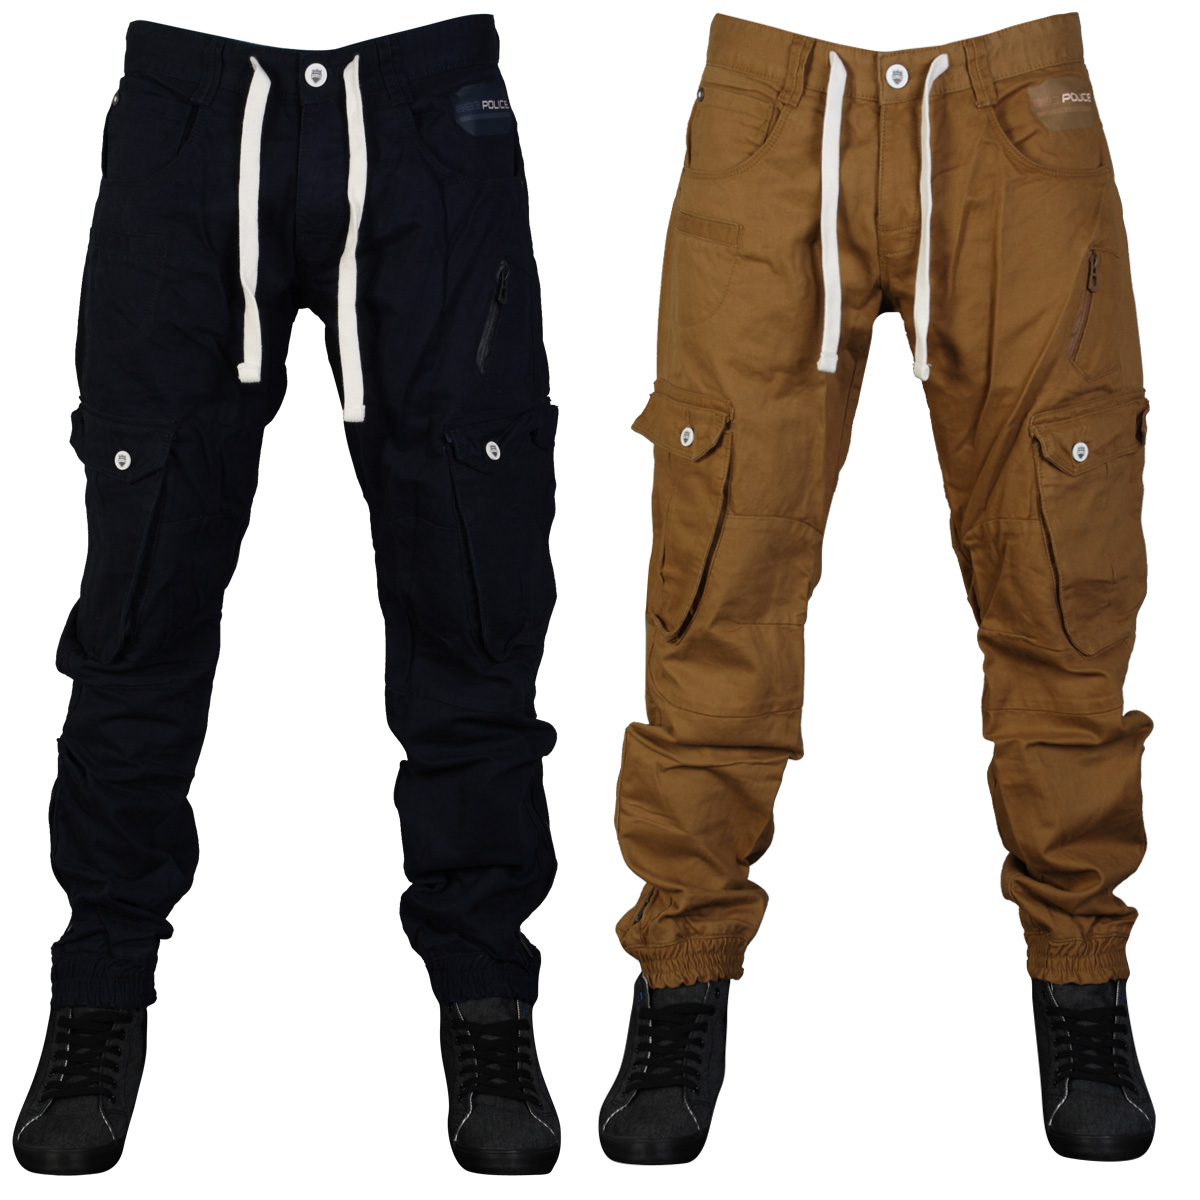 Black Cargo Work Pants For Men - White Pants 2016